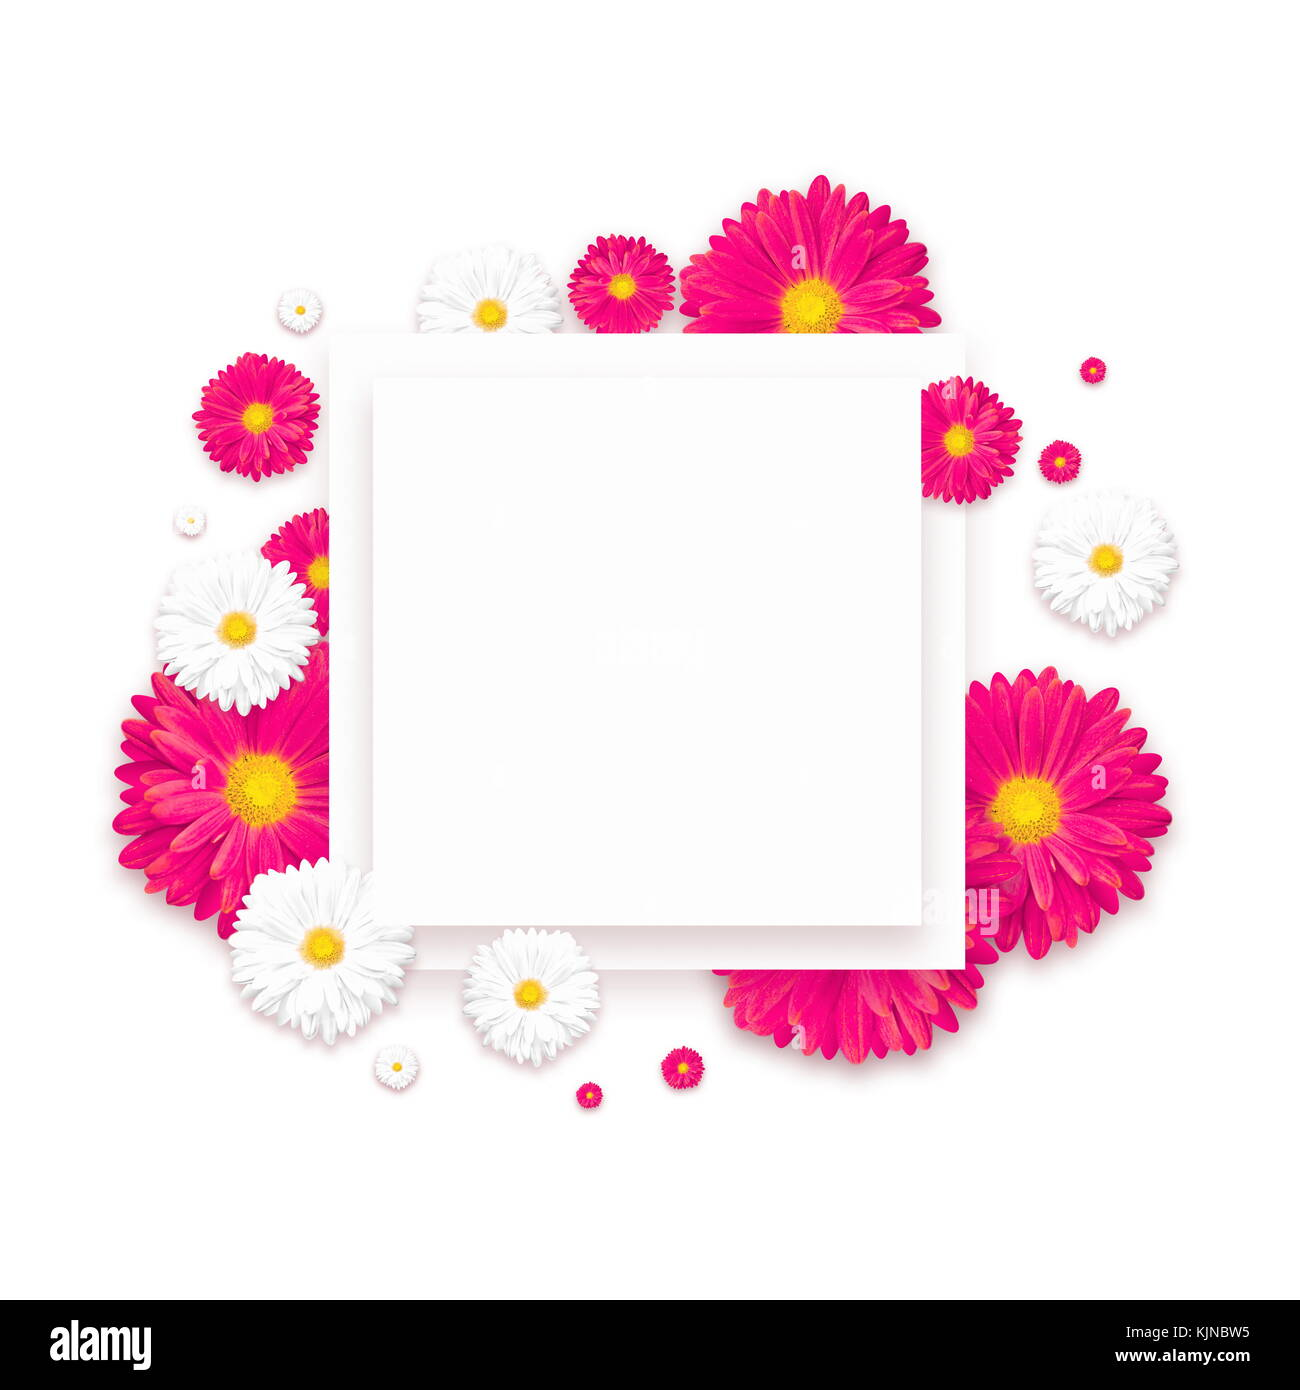 White Background With Beautiful Colorful Flower Wallpaper Flyers Invitation Posters Brochure Voucher Discount